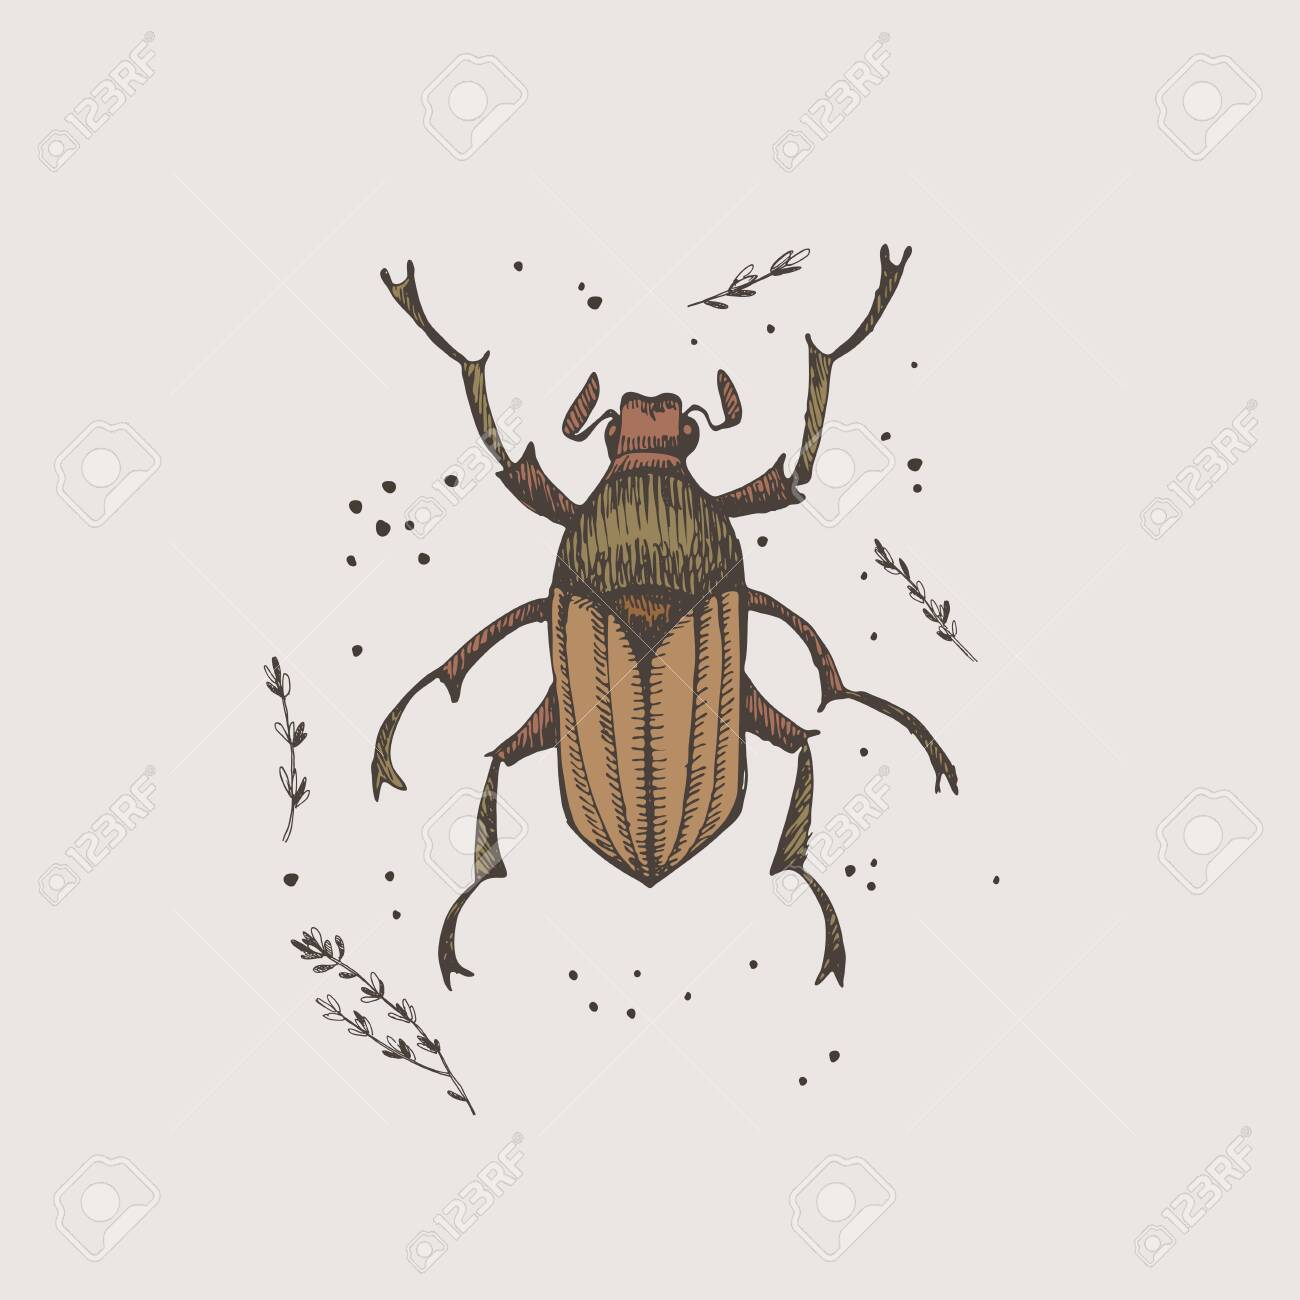 Hand-drawn chafer beetle on a light isolated background. Insect vector illustration in vintage style. Design element for zoological composition, poster, cover, brochure. - 149452463